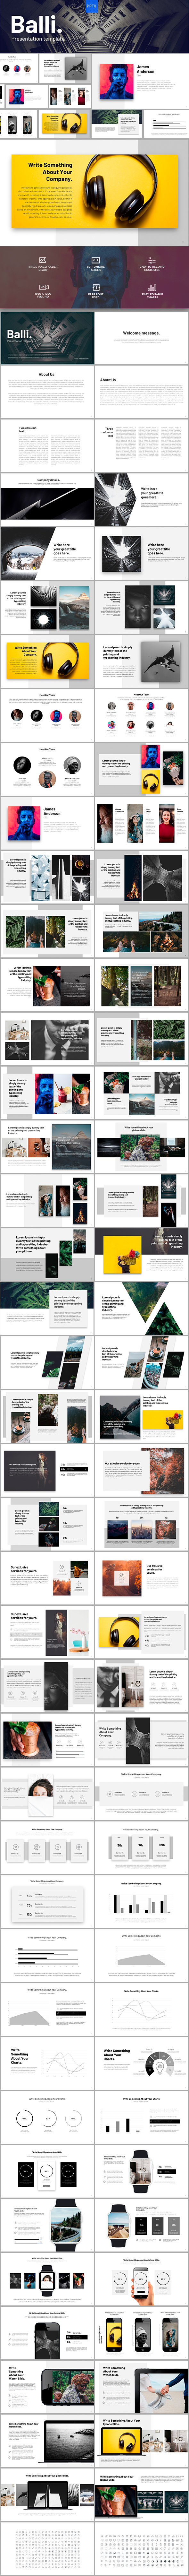 Balli Powerpoint Template - PowerPoint Templates Presentation Templates